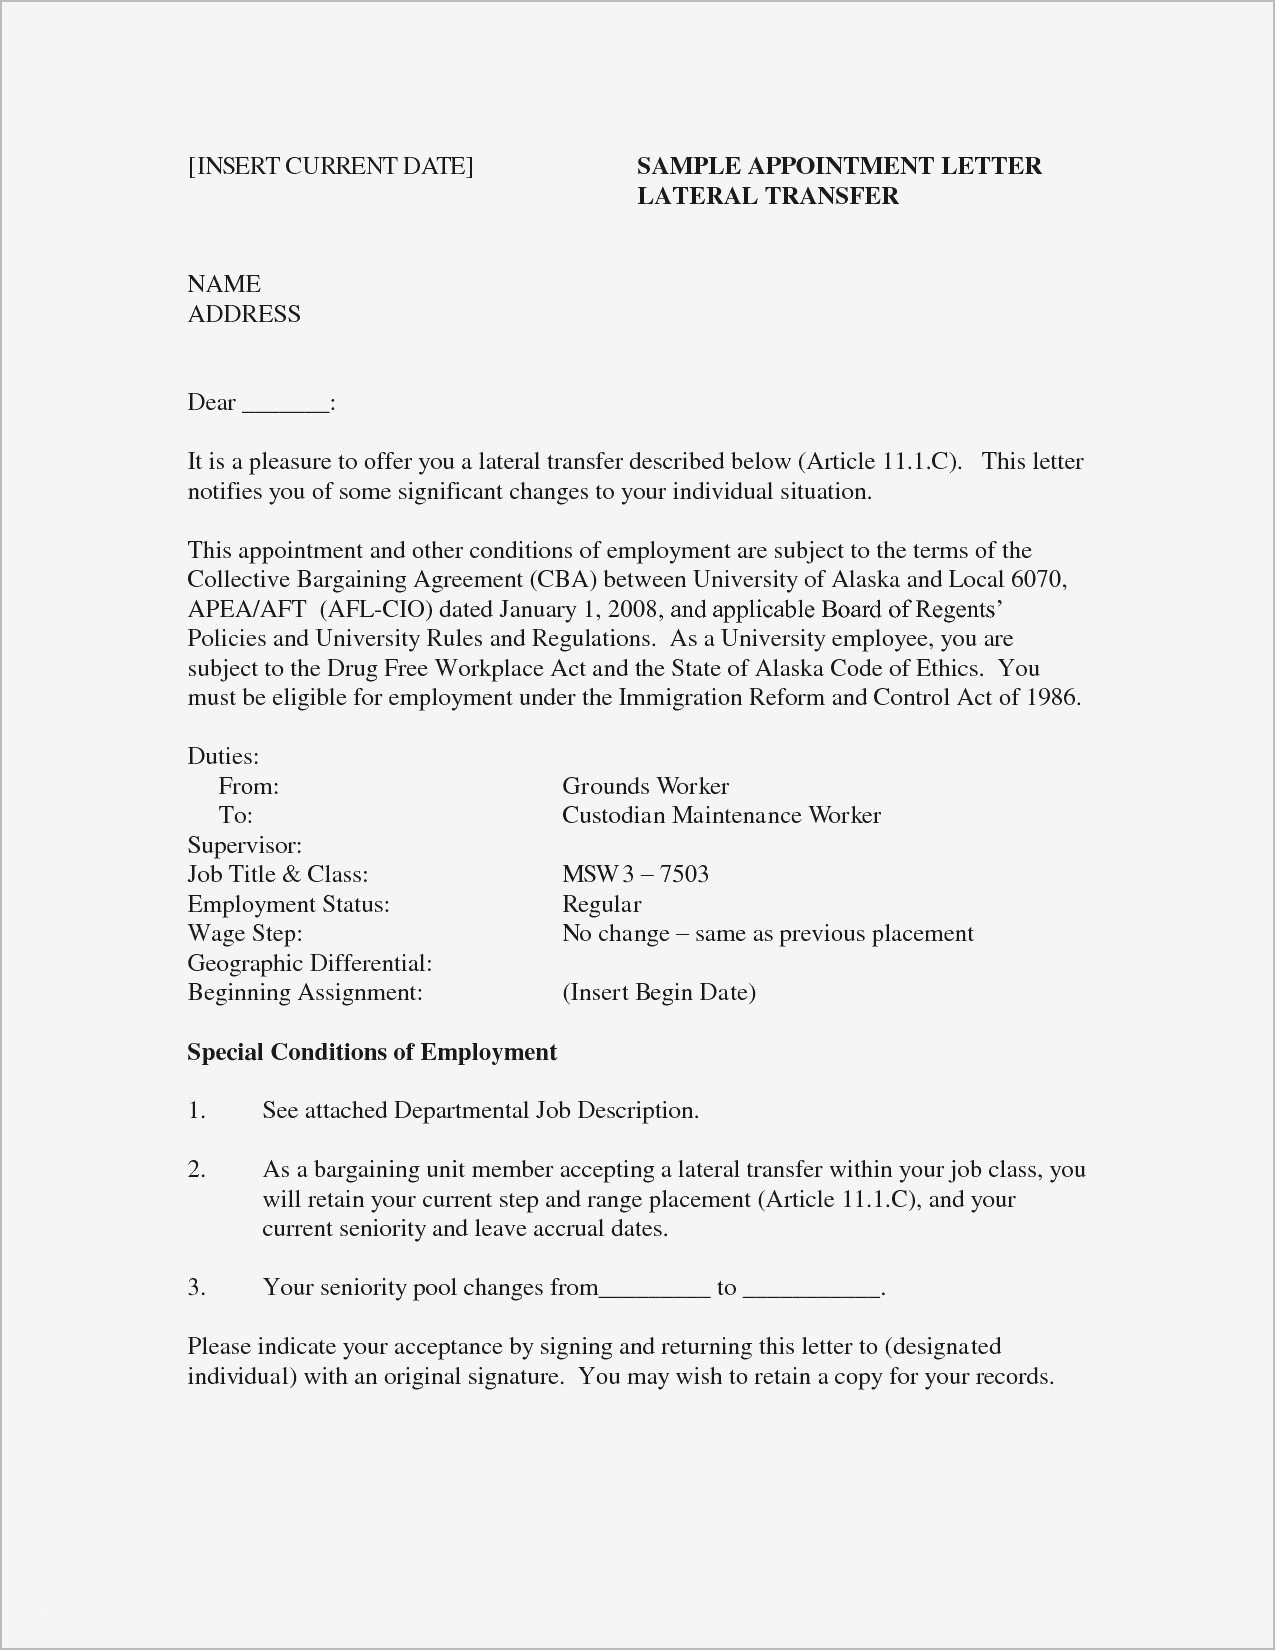 resume writer reviews example-Best Rated Resume Writing Services New Resume Review Services Best Fresh Resume 0d Resume For Substitute 13-t